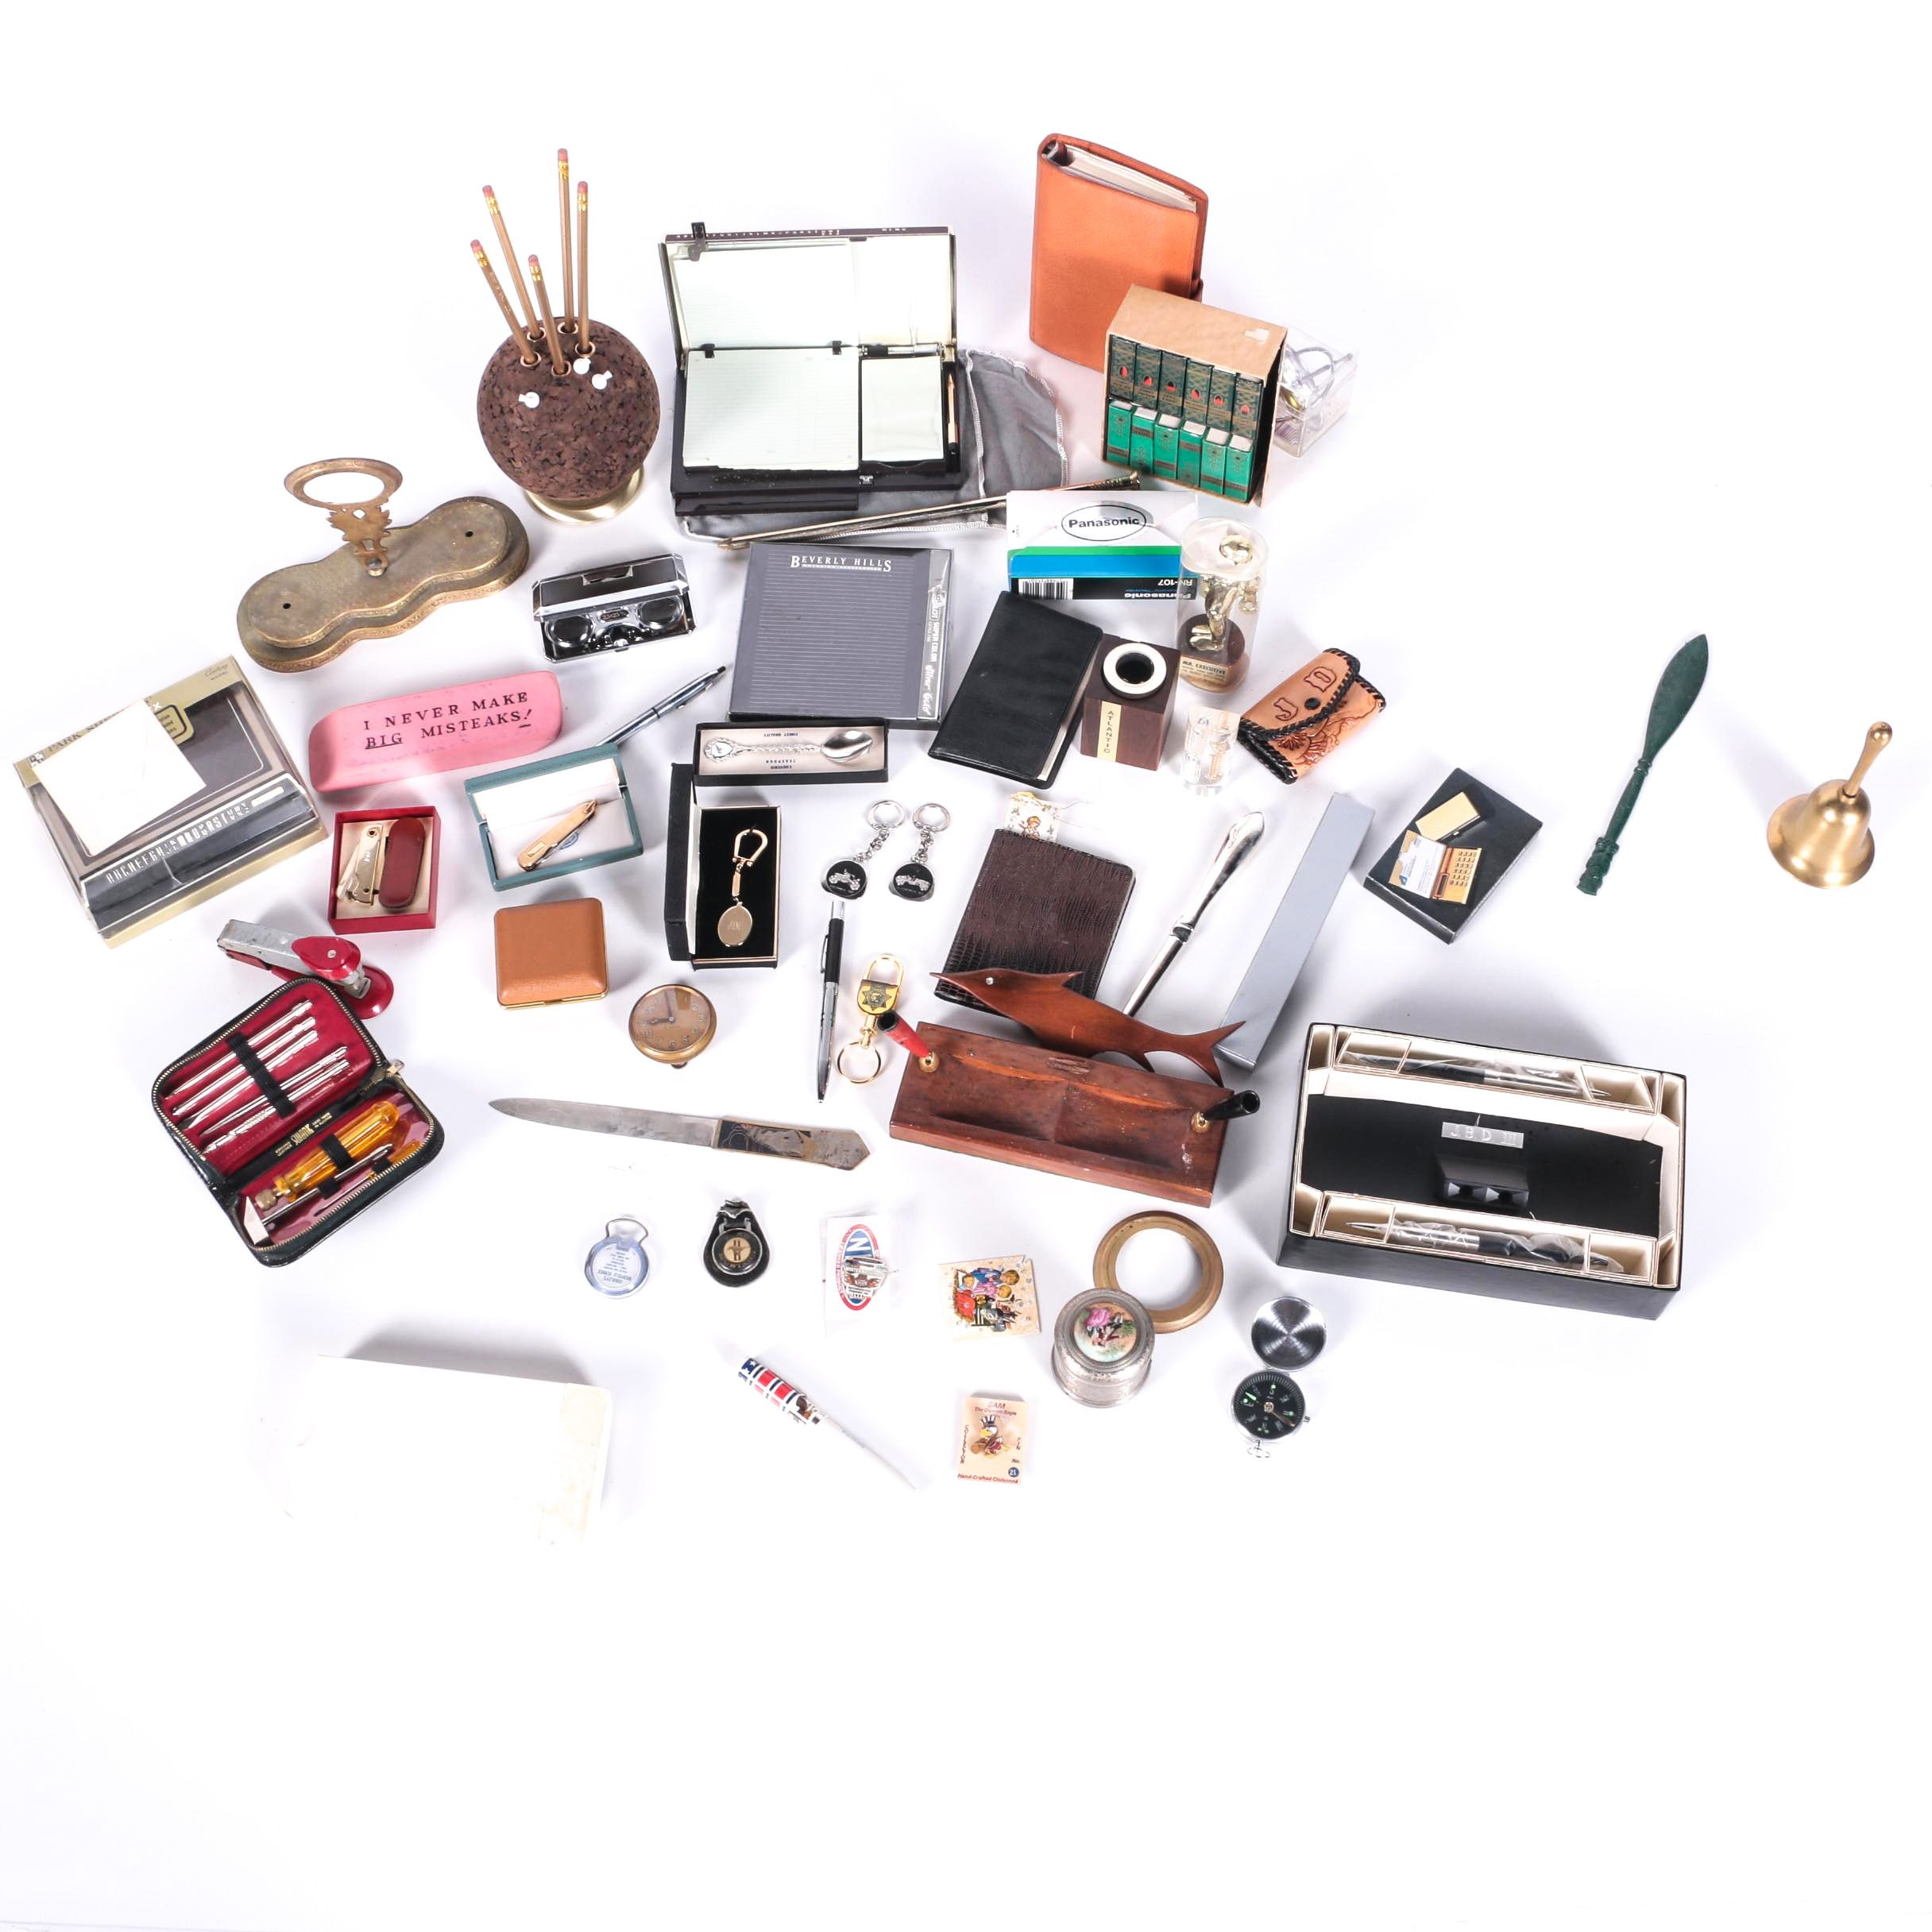 Assorted Office Supplies, Key Chains, Tools, and Collectibles